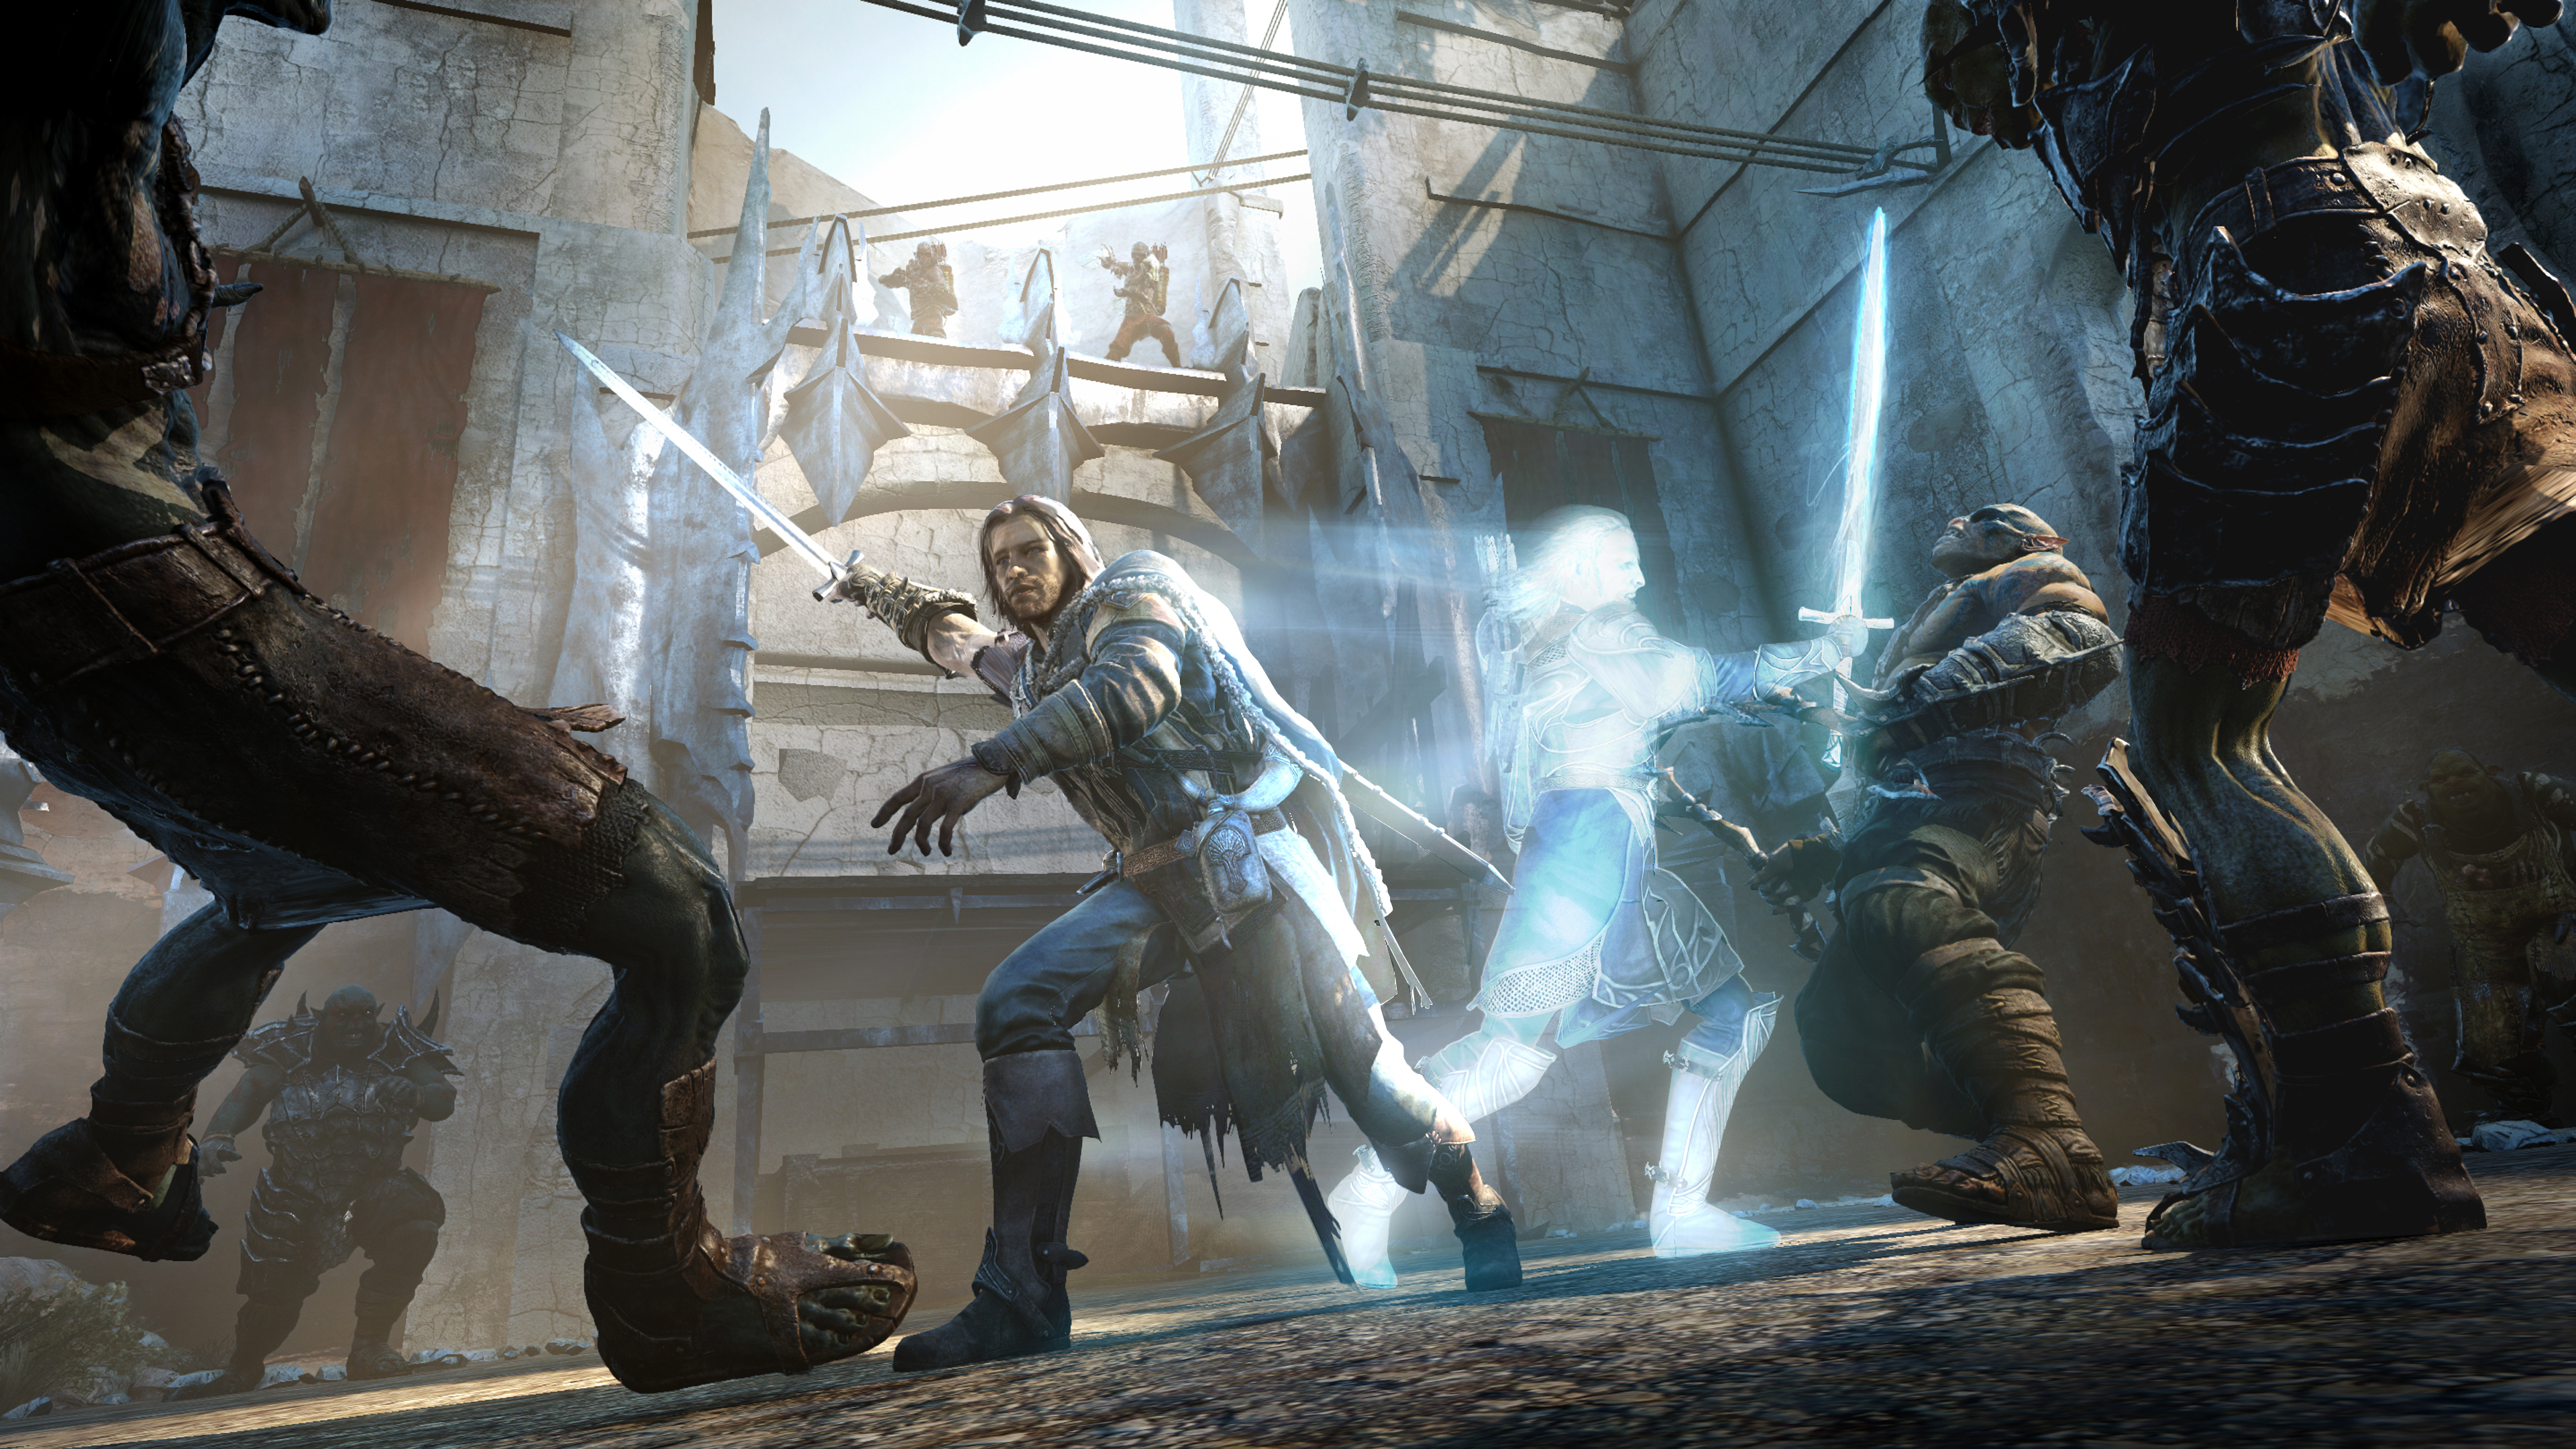 Middle-earth: Shadow of Mordor (Xbox 360) News and Videos